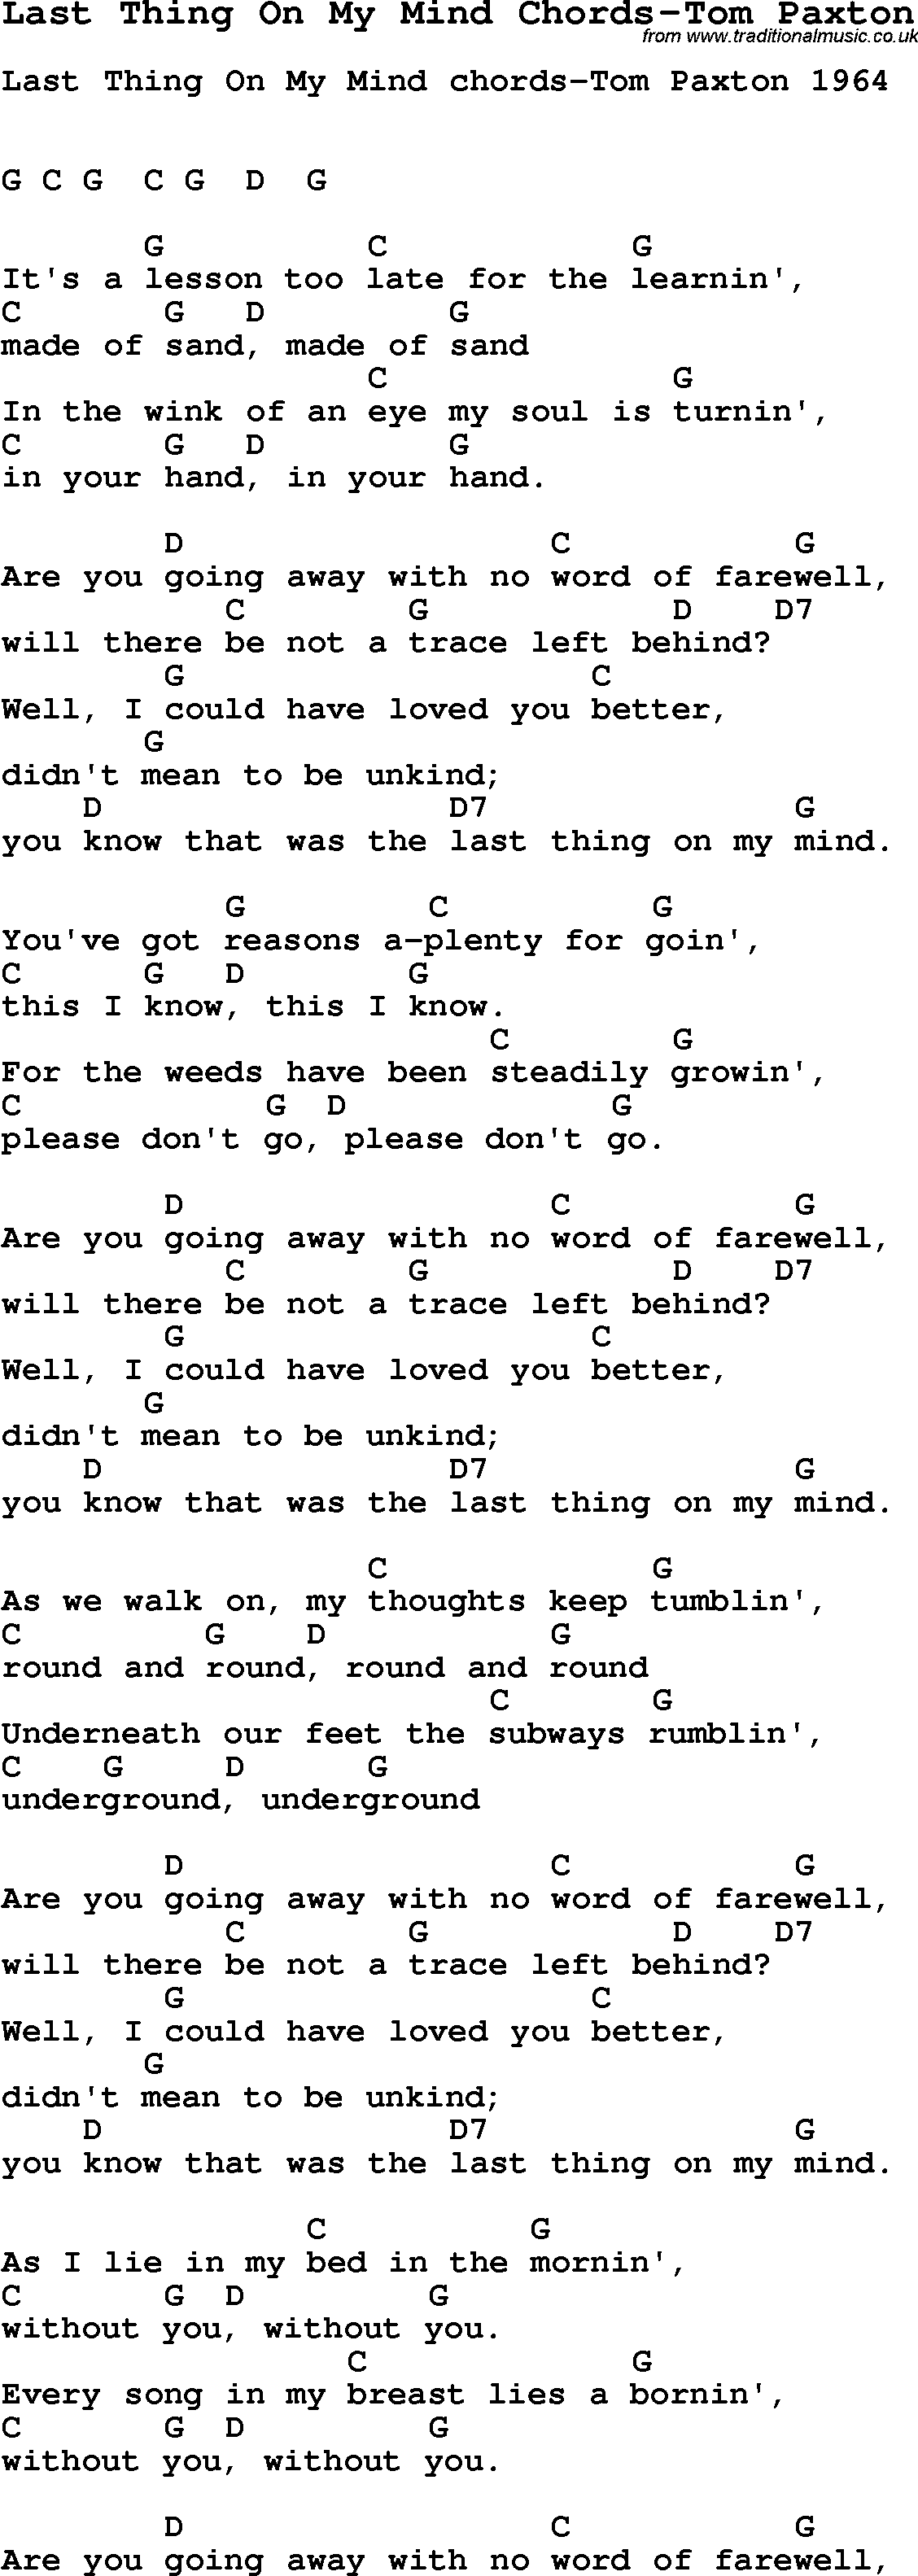 Summer Camp Song Last Thing On My Mind Chords Tom Paxton With